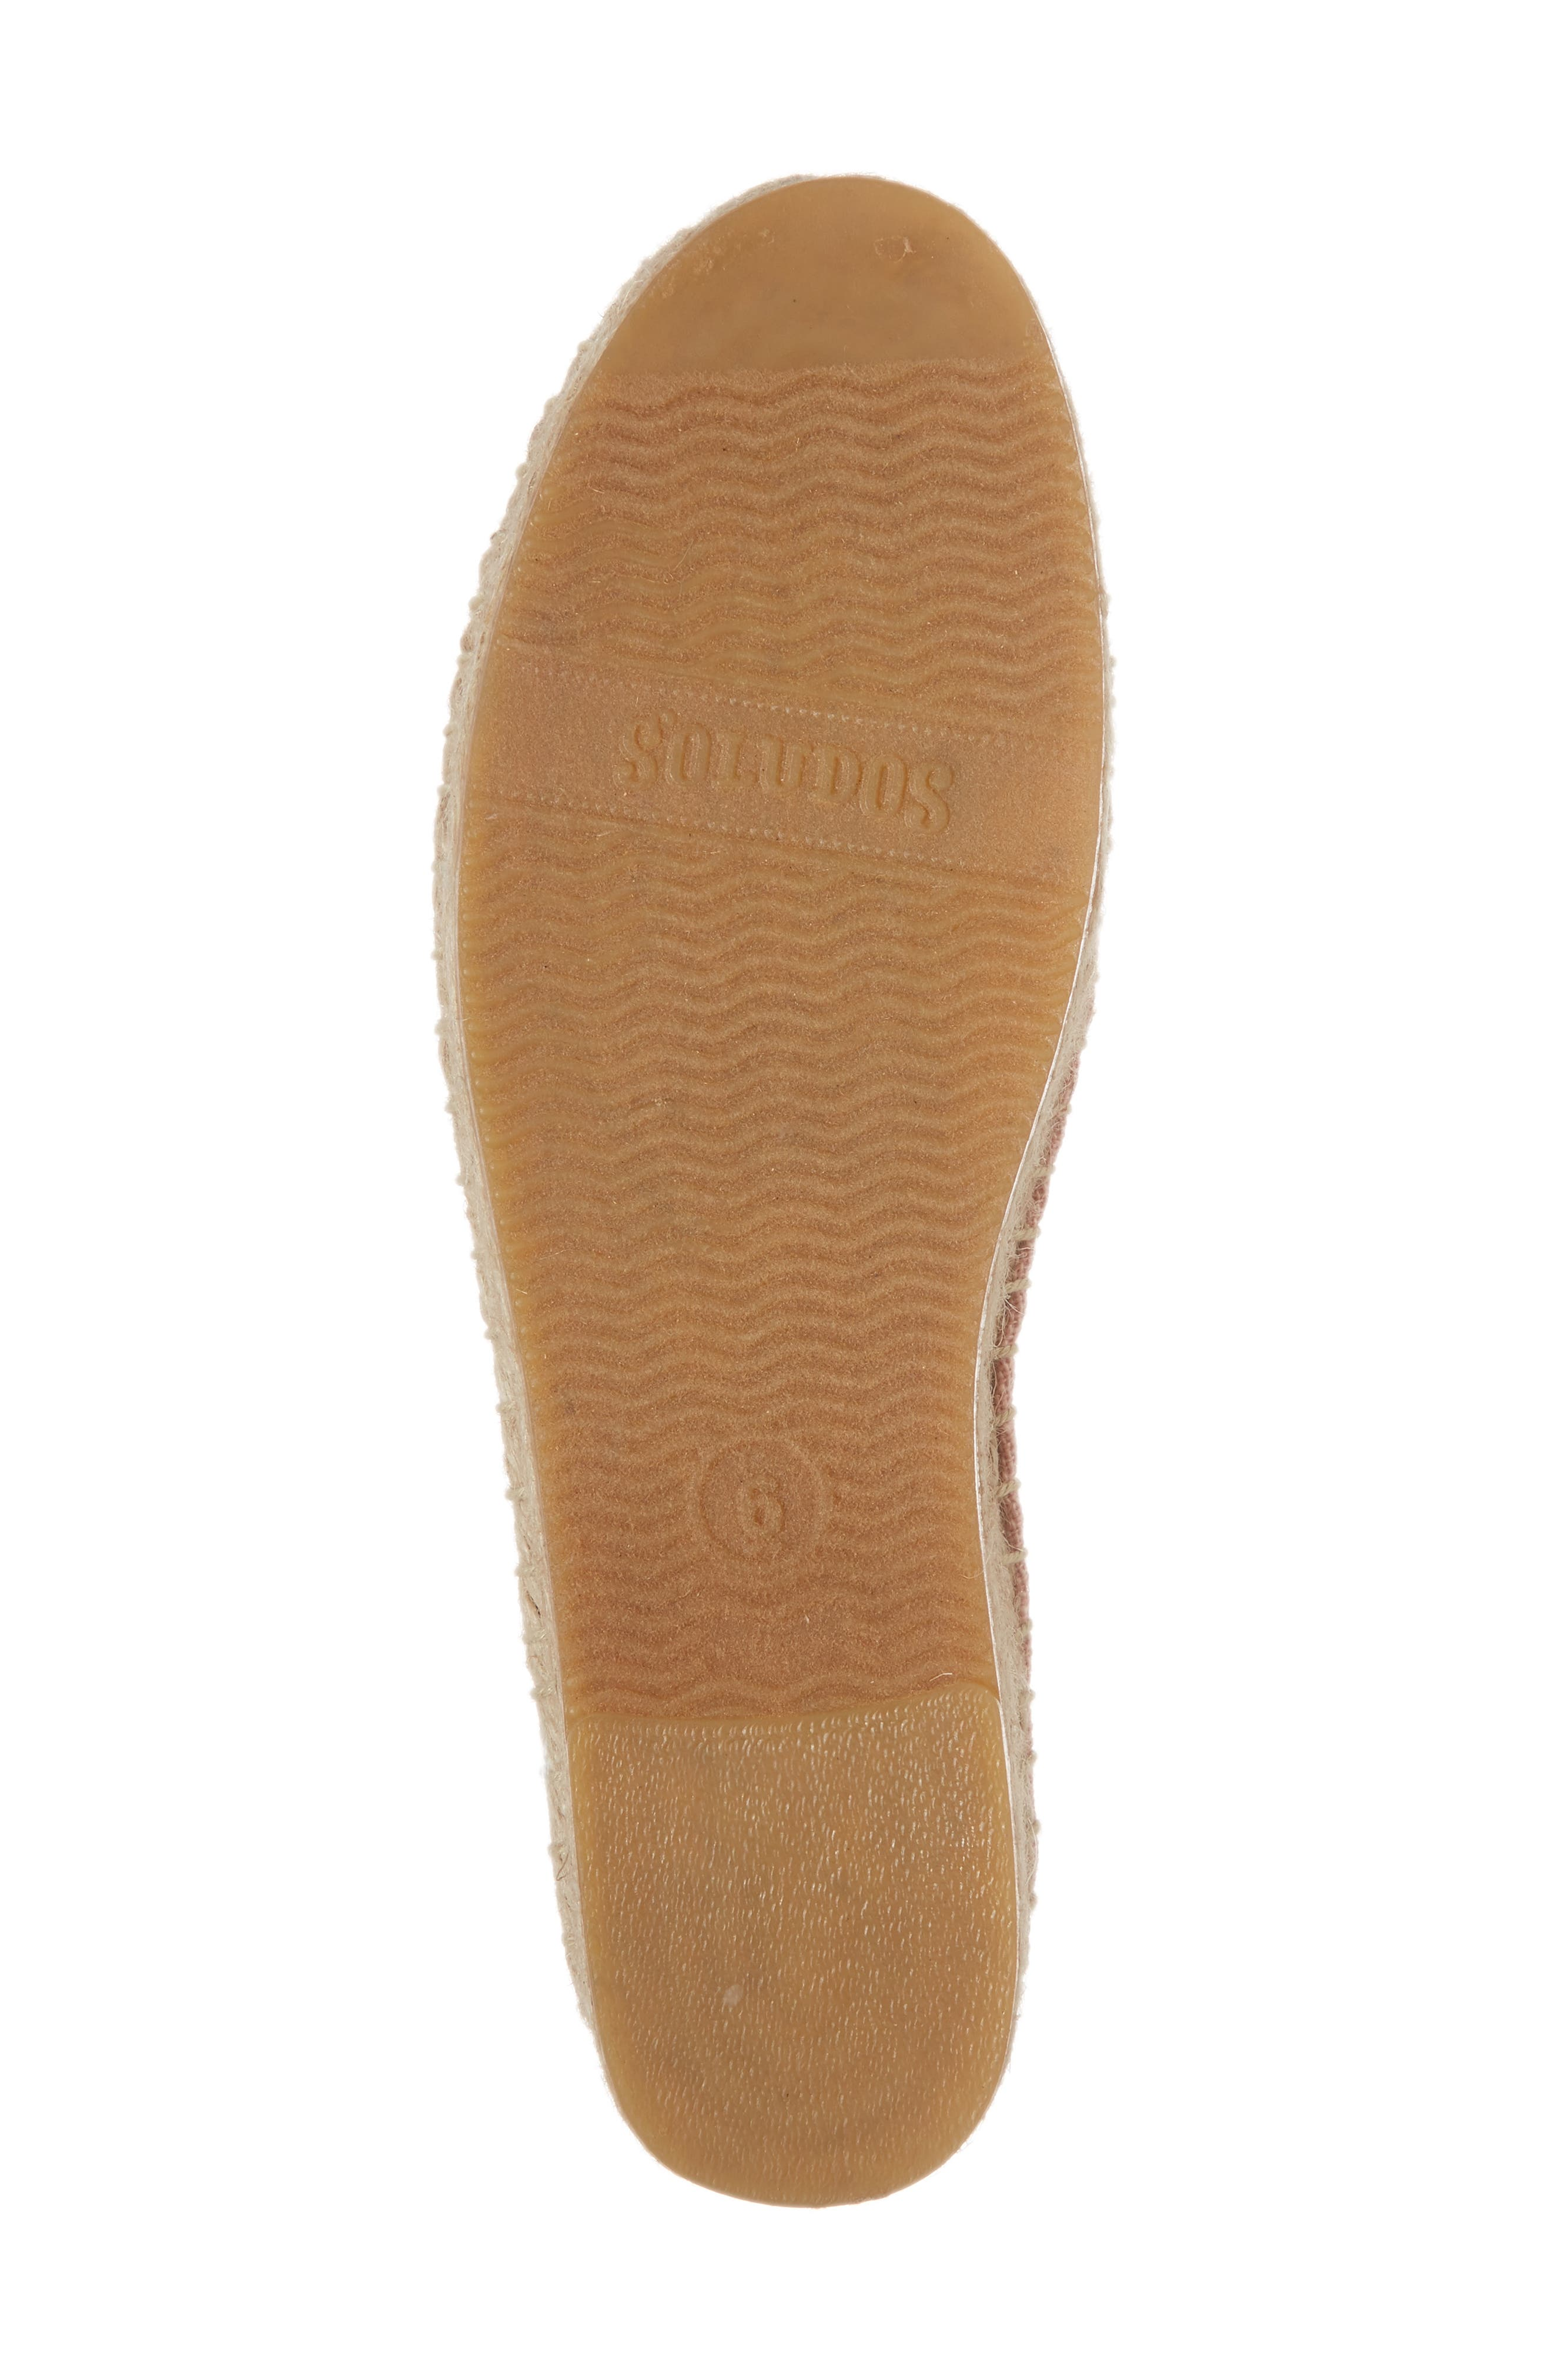 SOLUDOS, Ciao Bella Espadrille Flat, Alternate thumbnail 6, color, DUSTY ROSE FABRIC